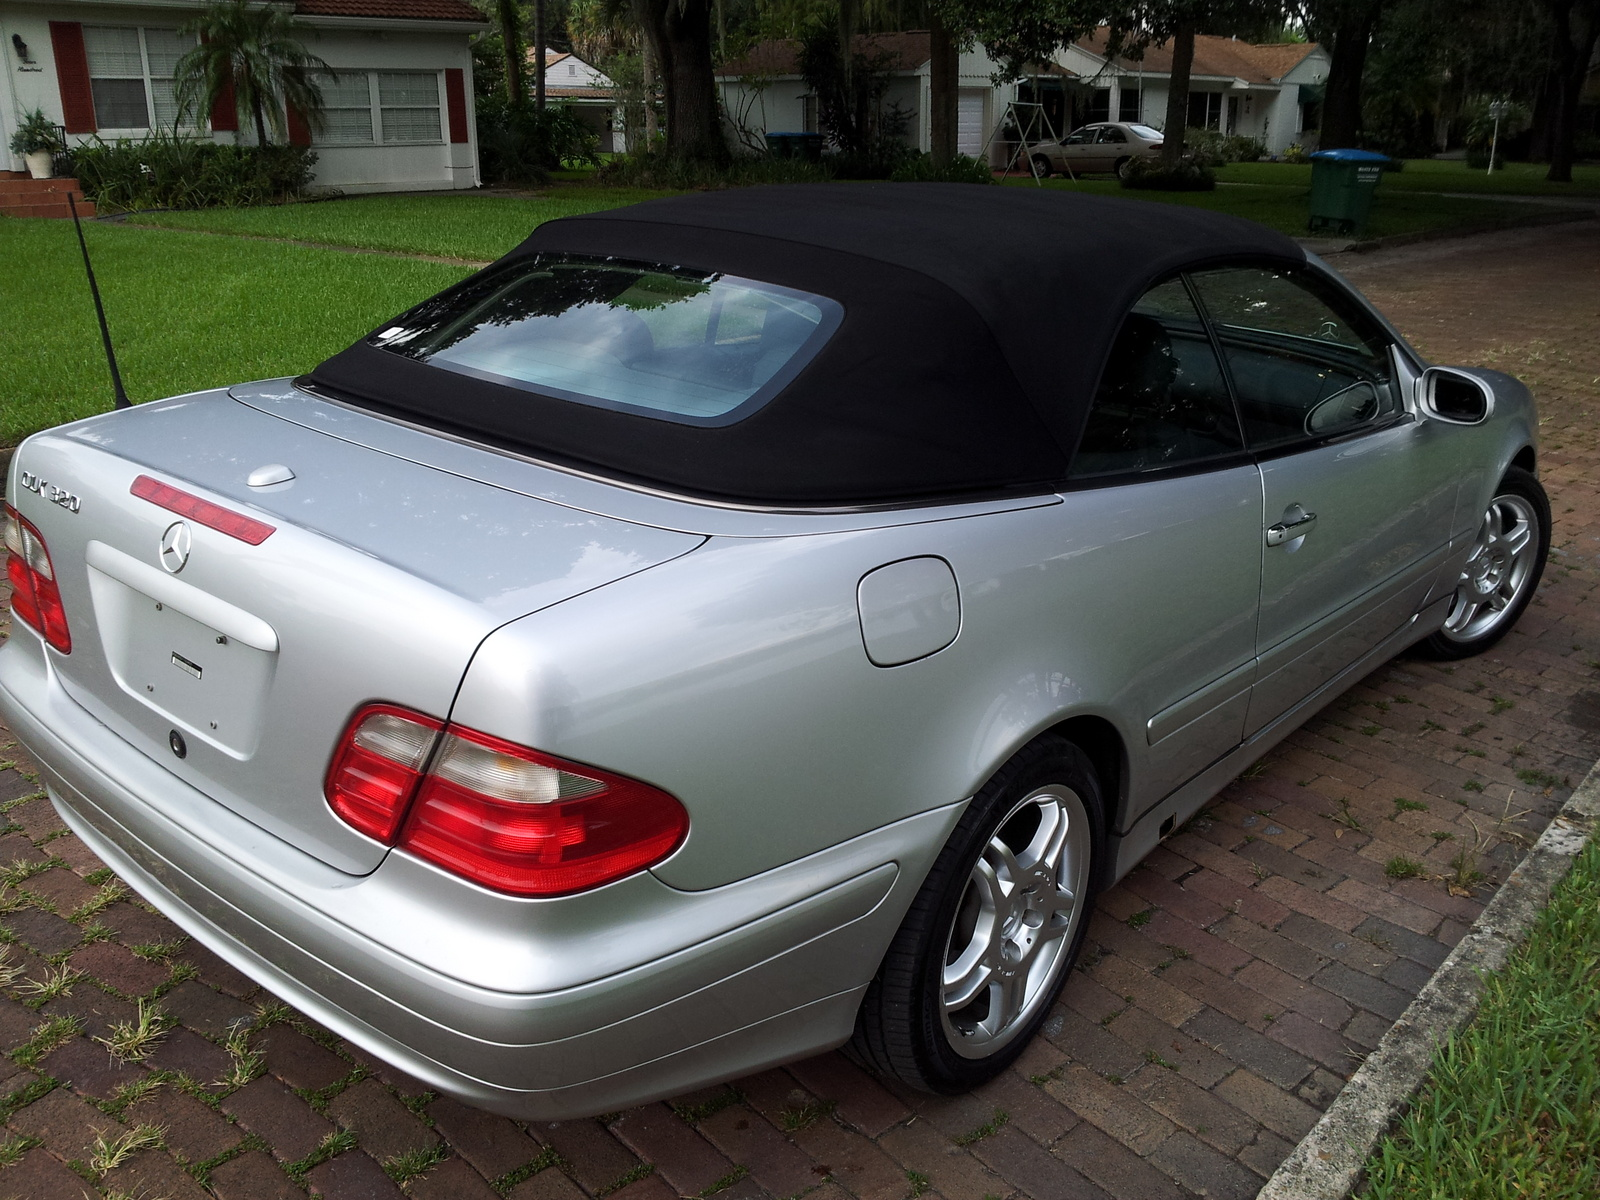 2001 mercedes benz clk class pictures cargurus. Black Bedroom Furniture Sets. Home Design Ideas